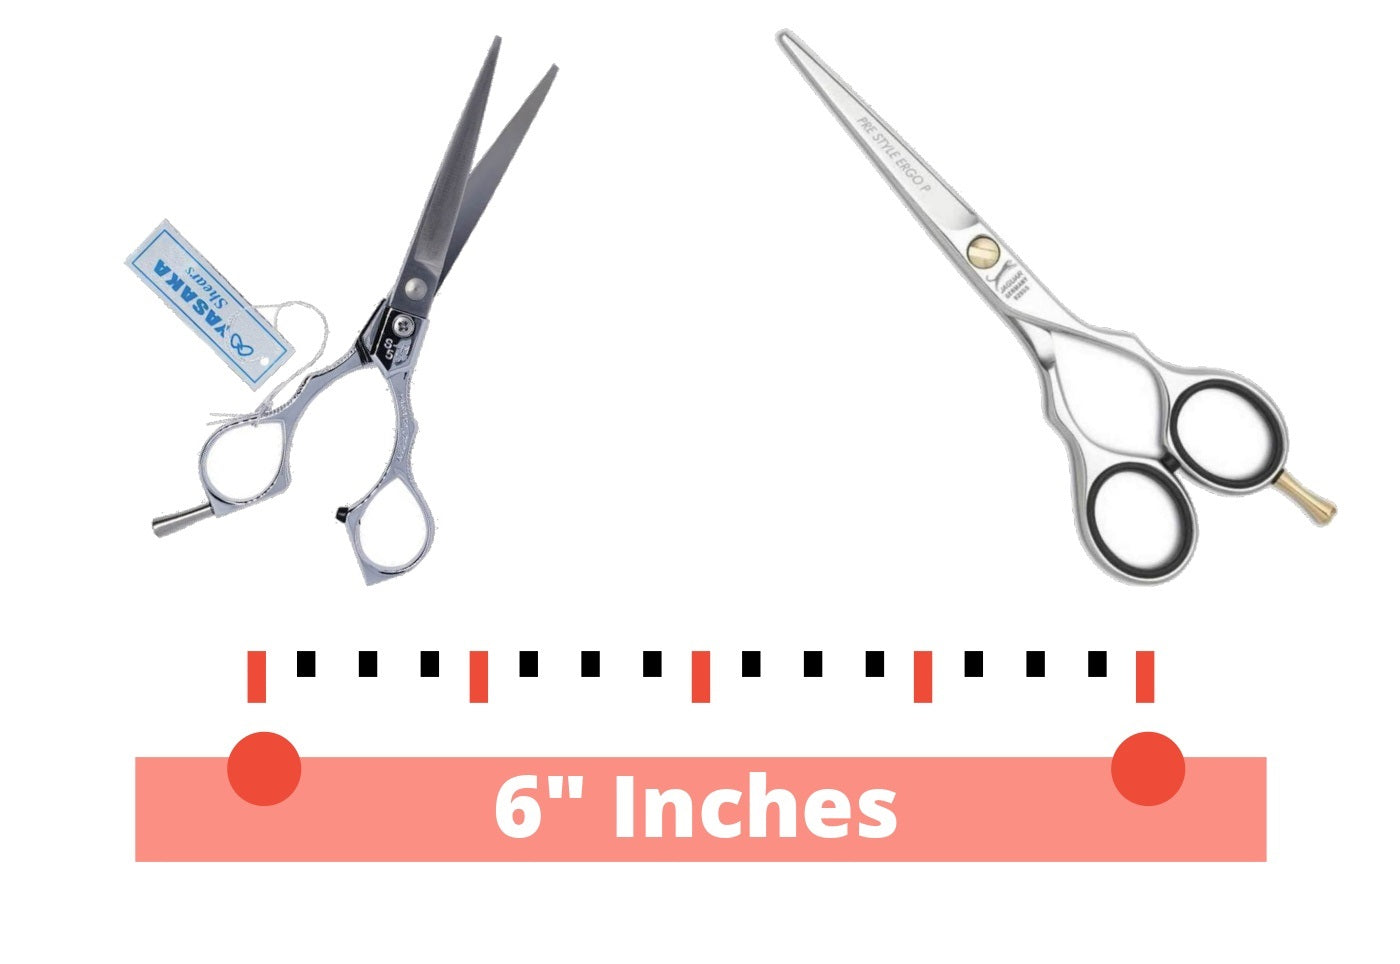 Our 6 Inch Scissors Selection